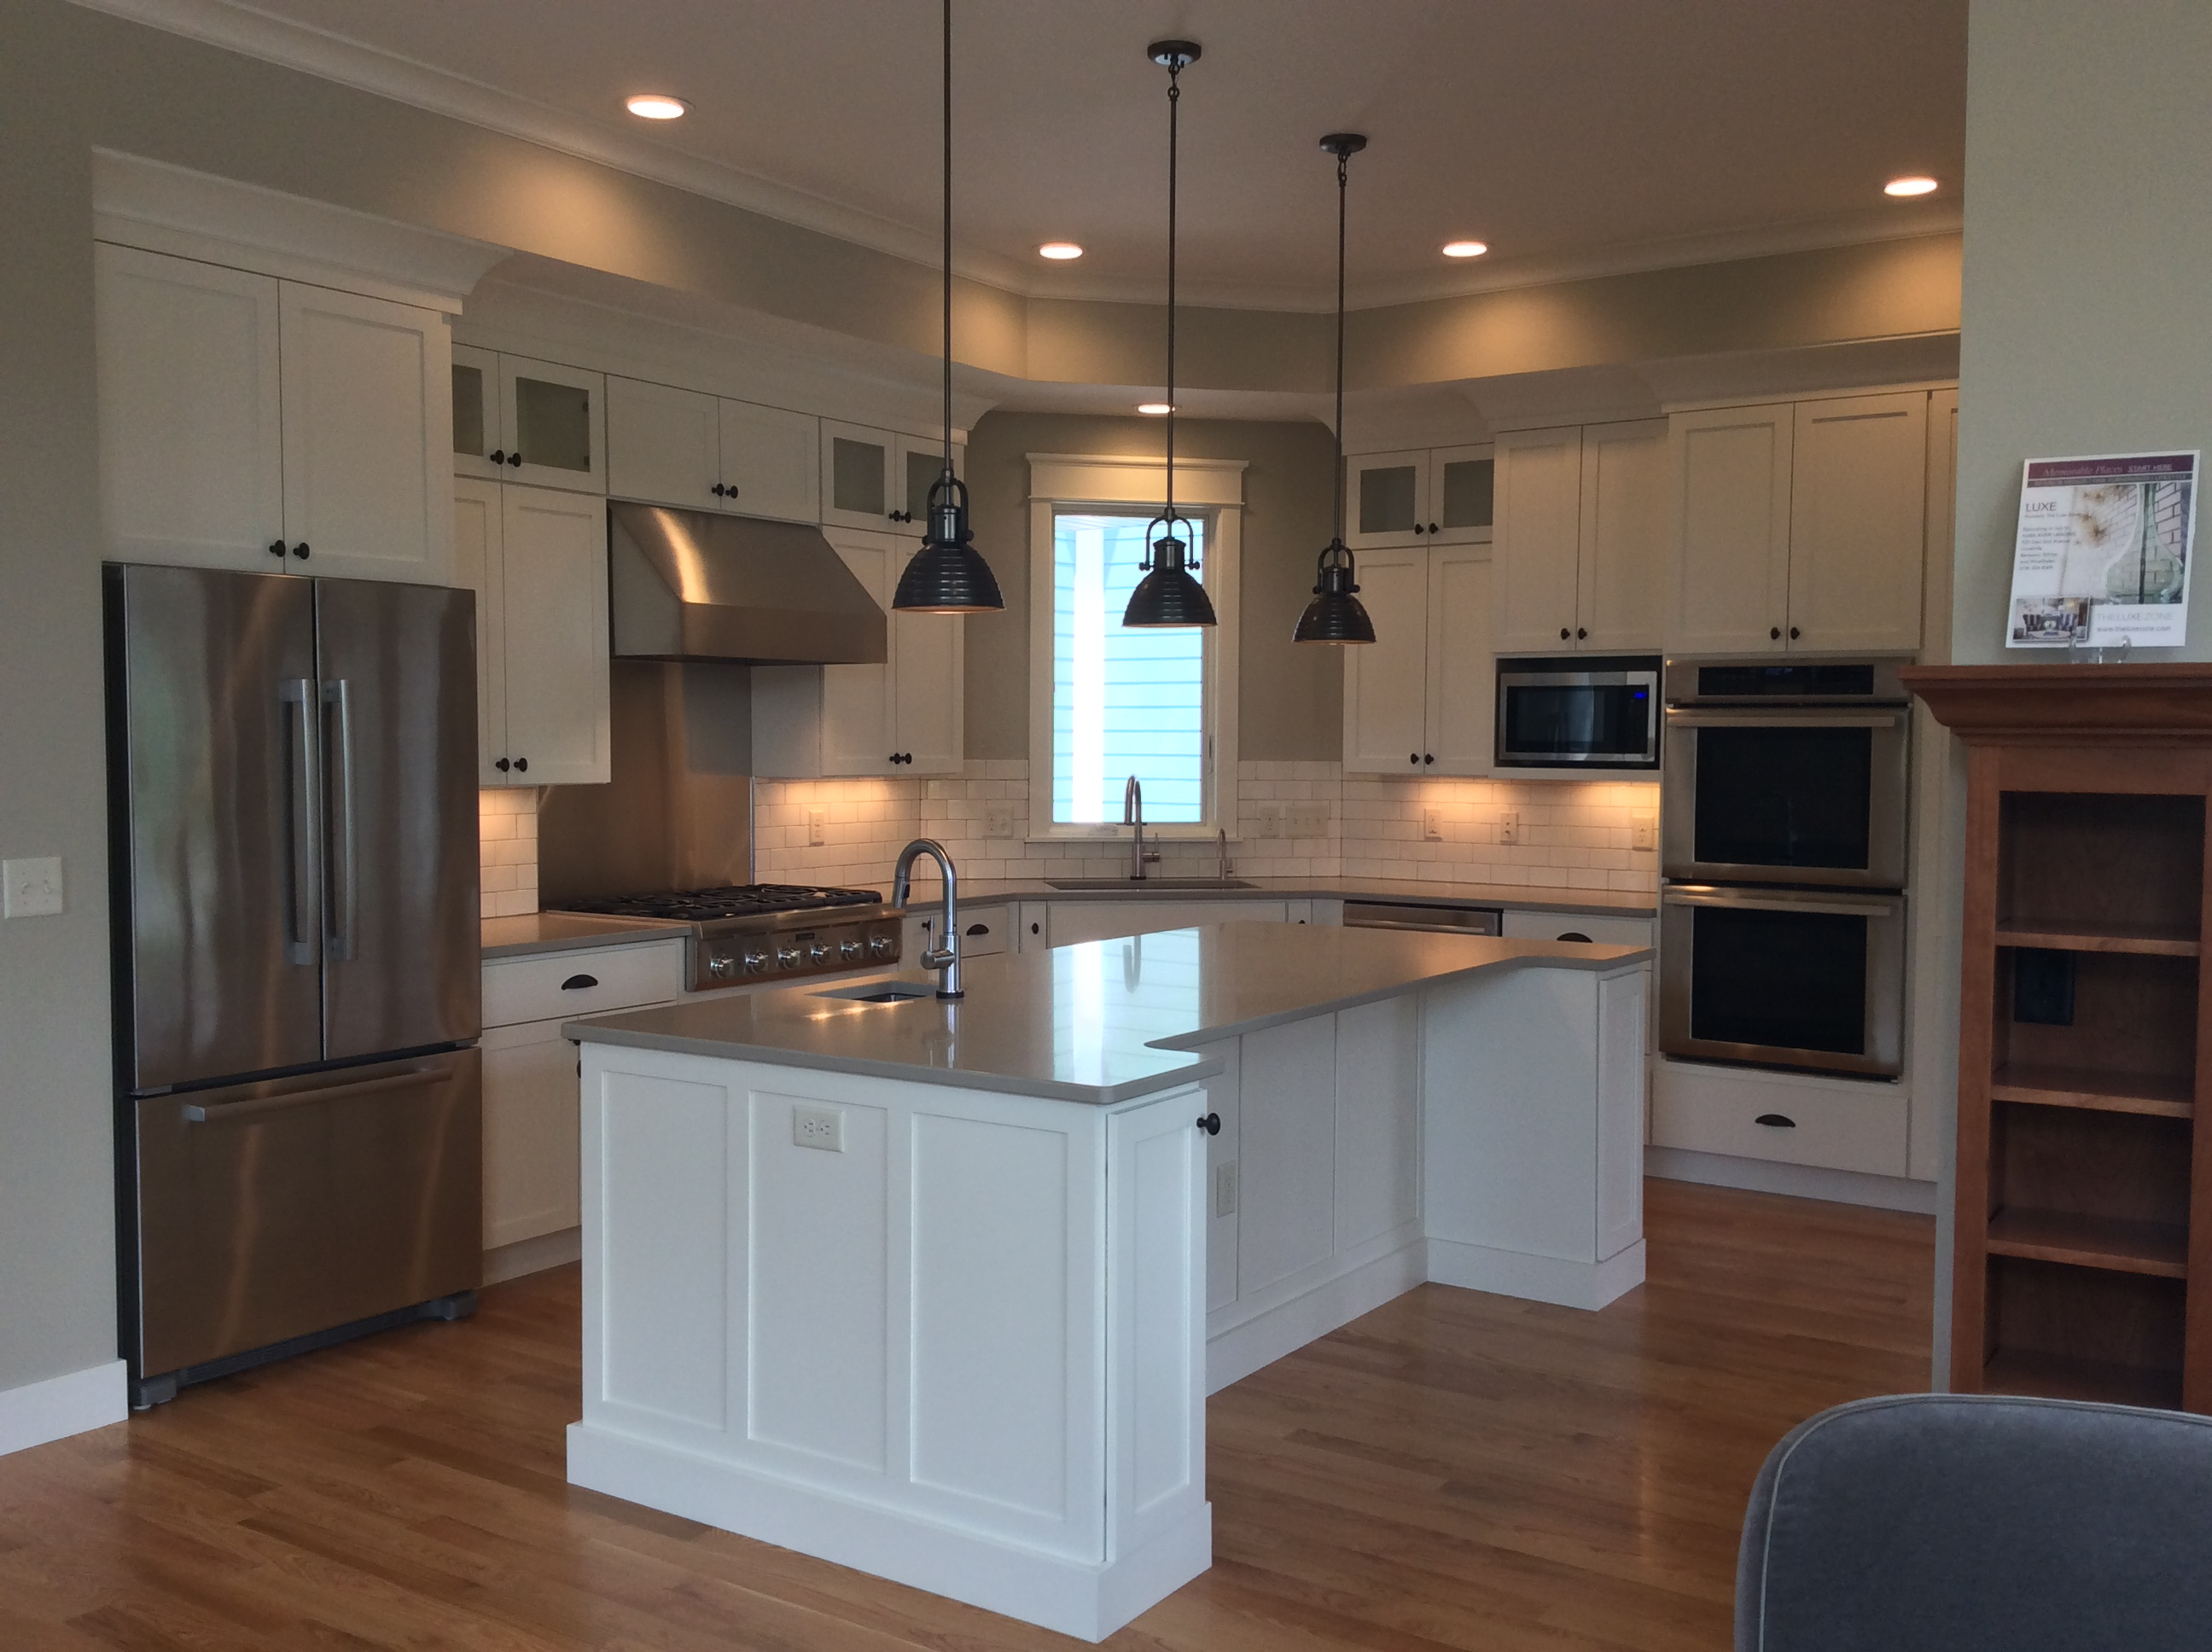 Photos Of White Kitchen Cabinets White Kitchen Cabinets For A Cleaner Look Cabinet Style